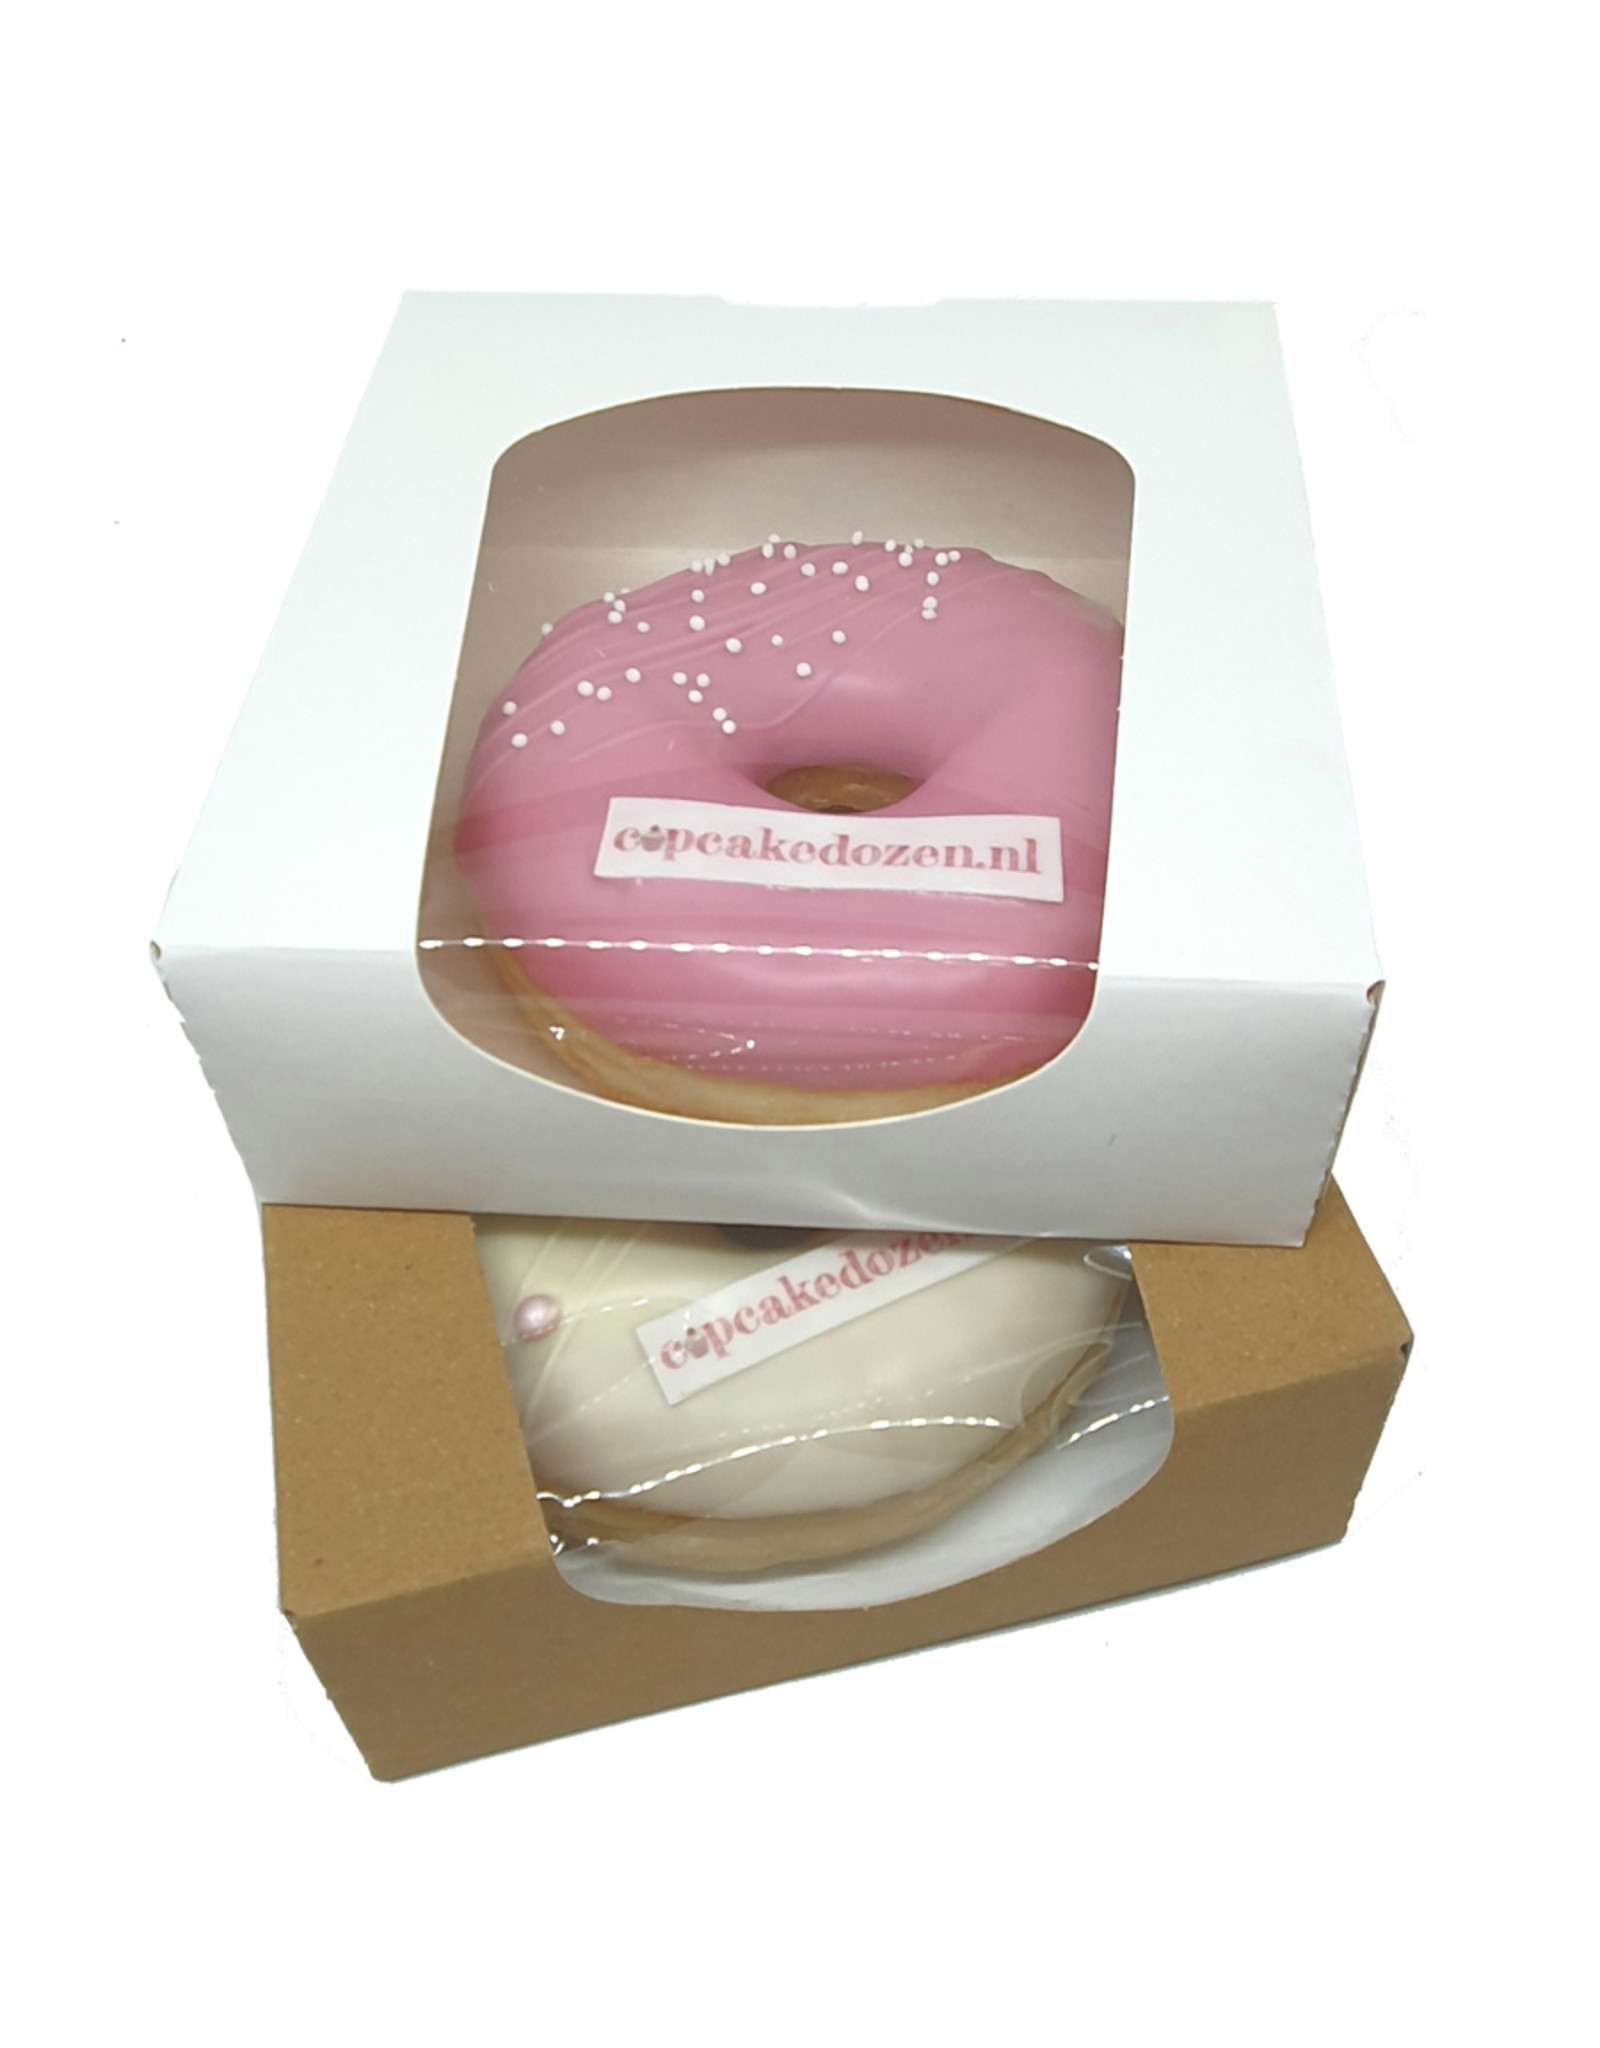 biodegradable white box for 1 donut, brownies, macarons, chocolates, etc. (per 250 pieces)